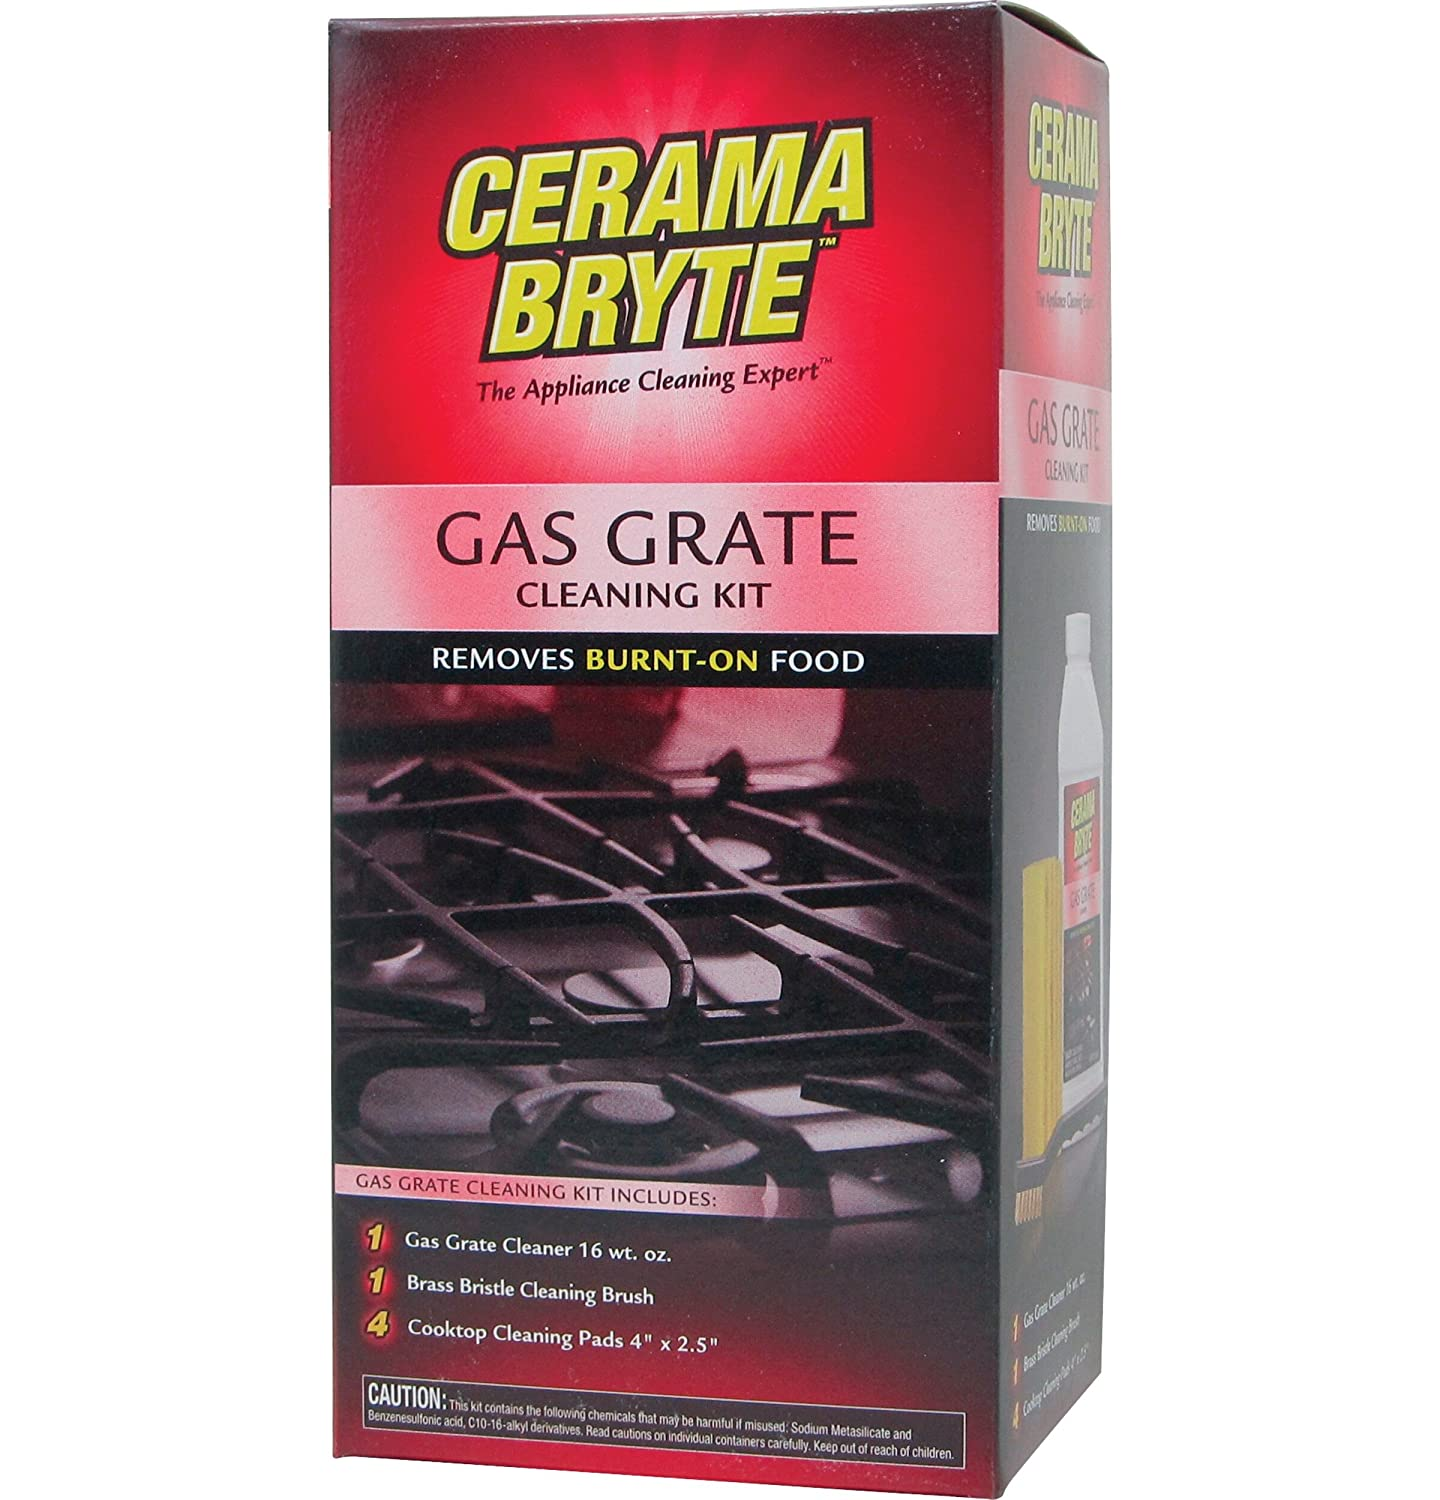 General Electric WX10X10021 Cerama Bryte Gas Grate Cleaning Kit